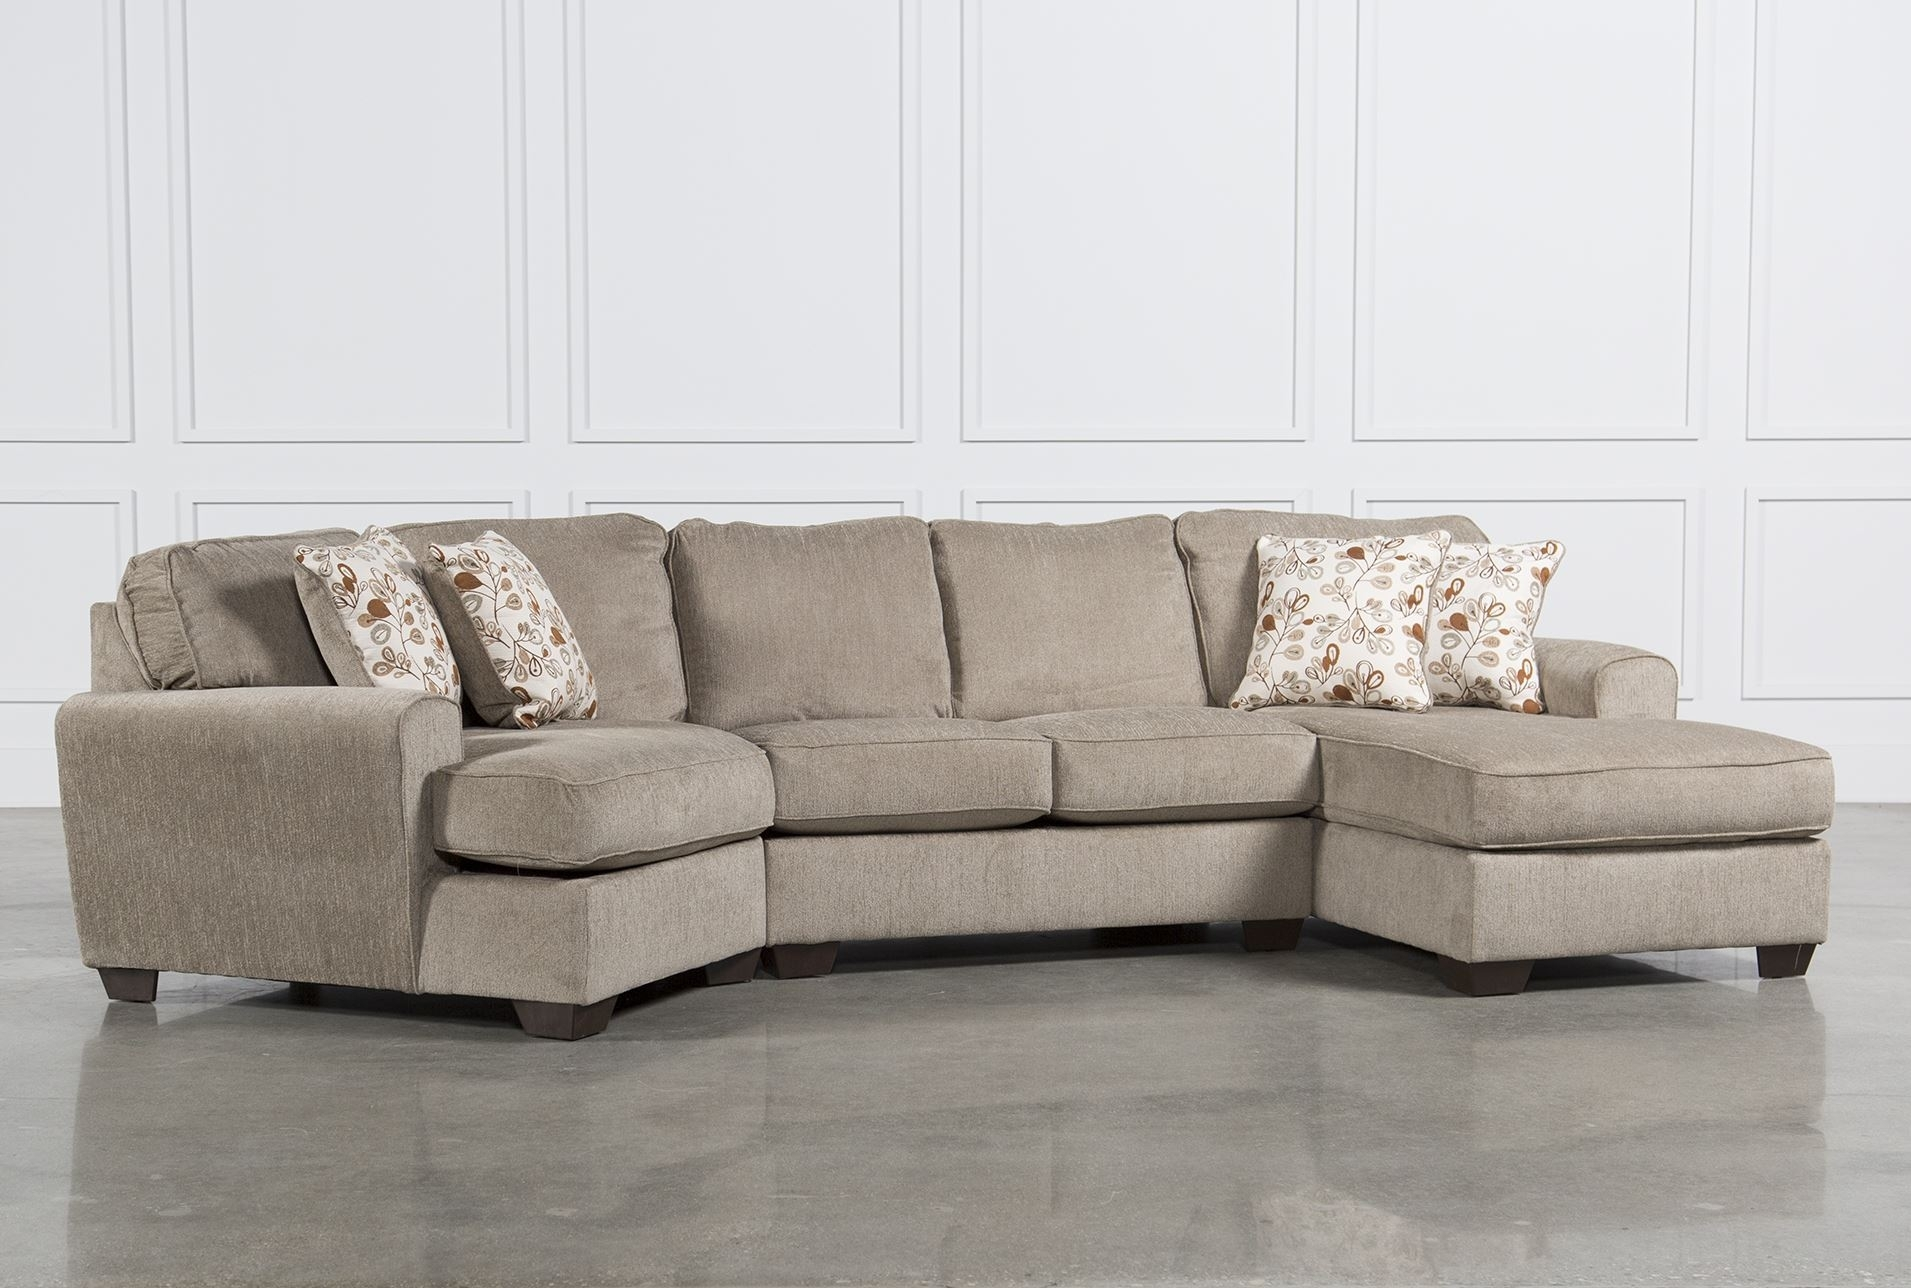 Furniture : Sectional Sofa Gta Sectional Couch El Paso Sectional Pertaining To El Paso Tx Sectional Sofas (View 10 of 10)